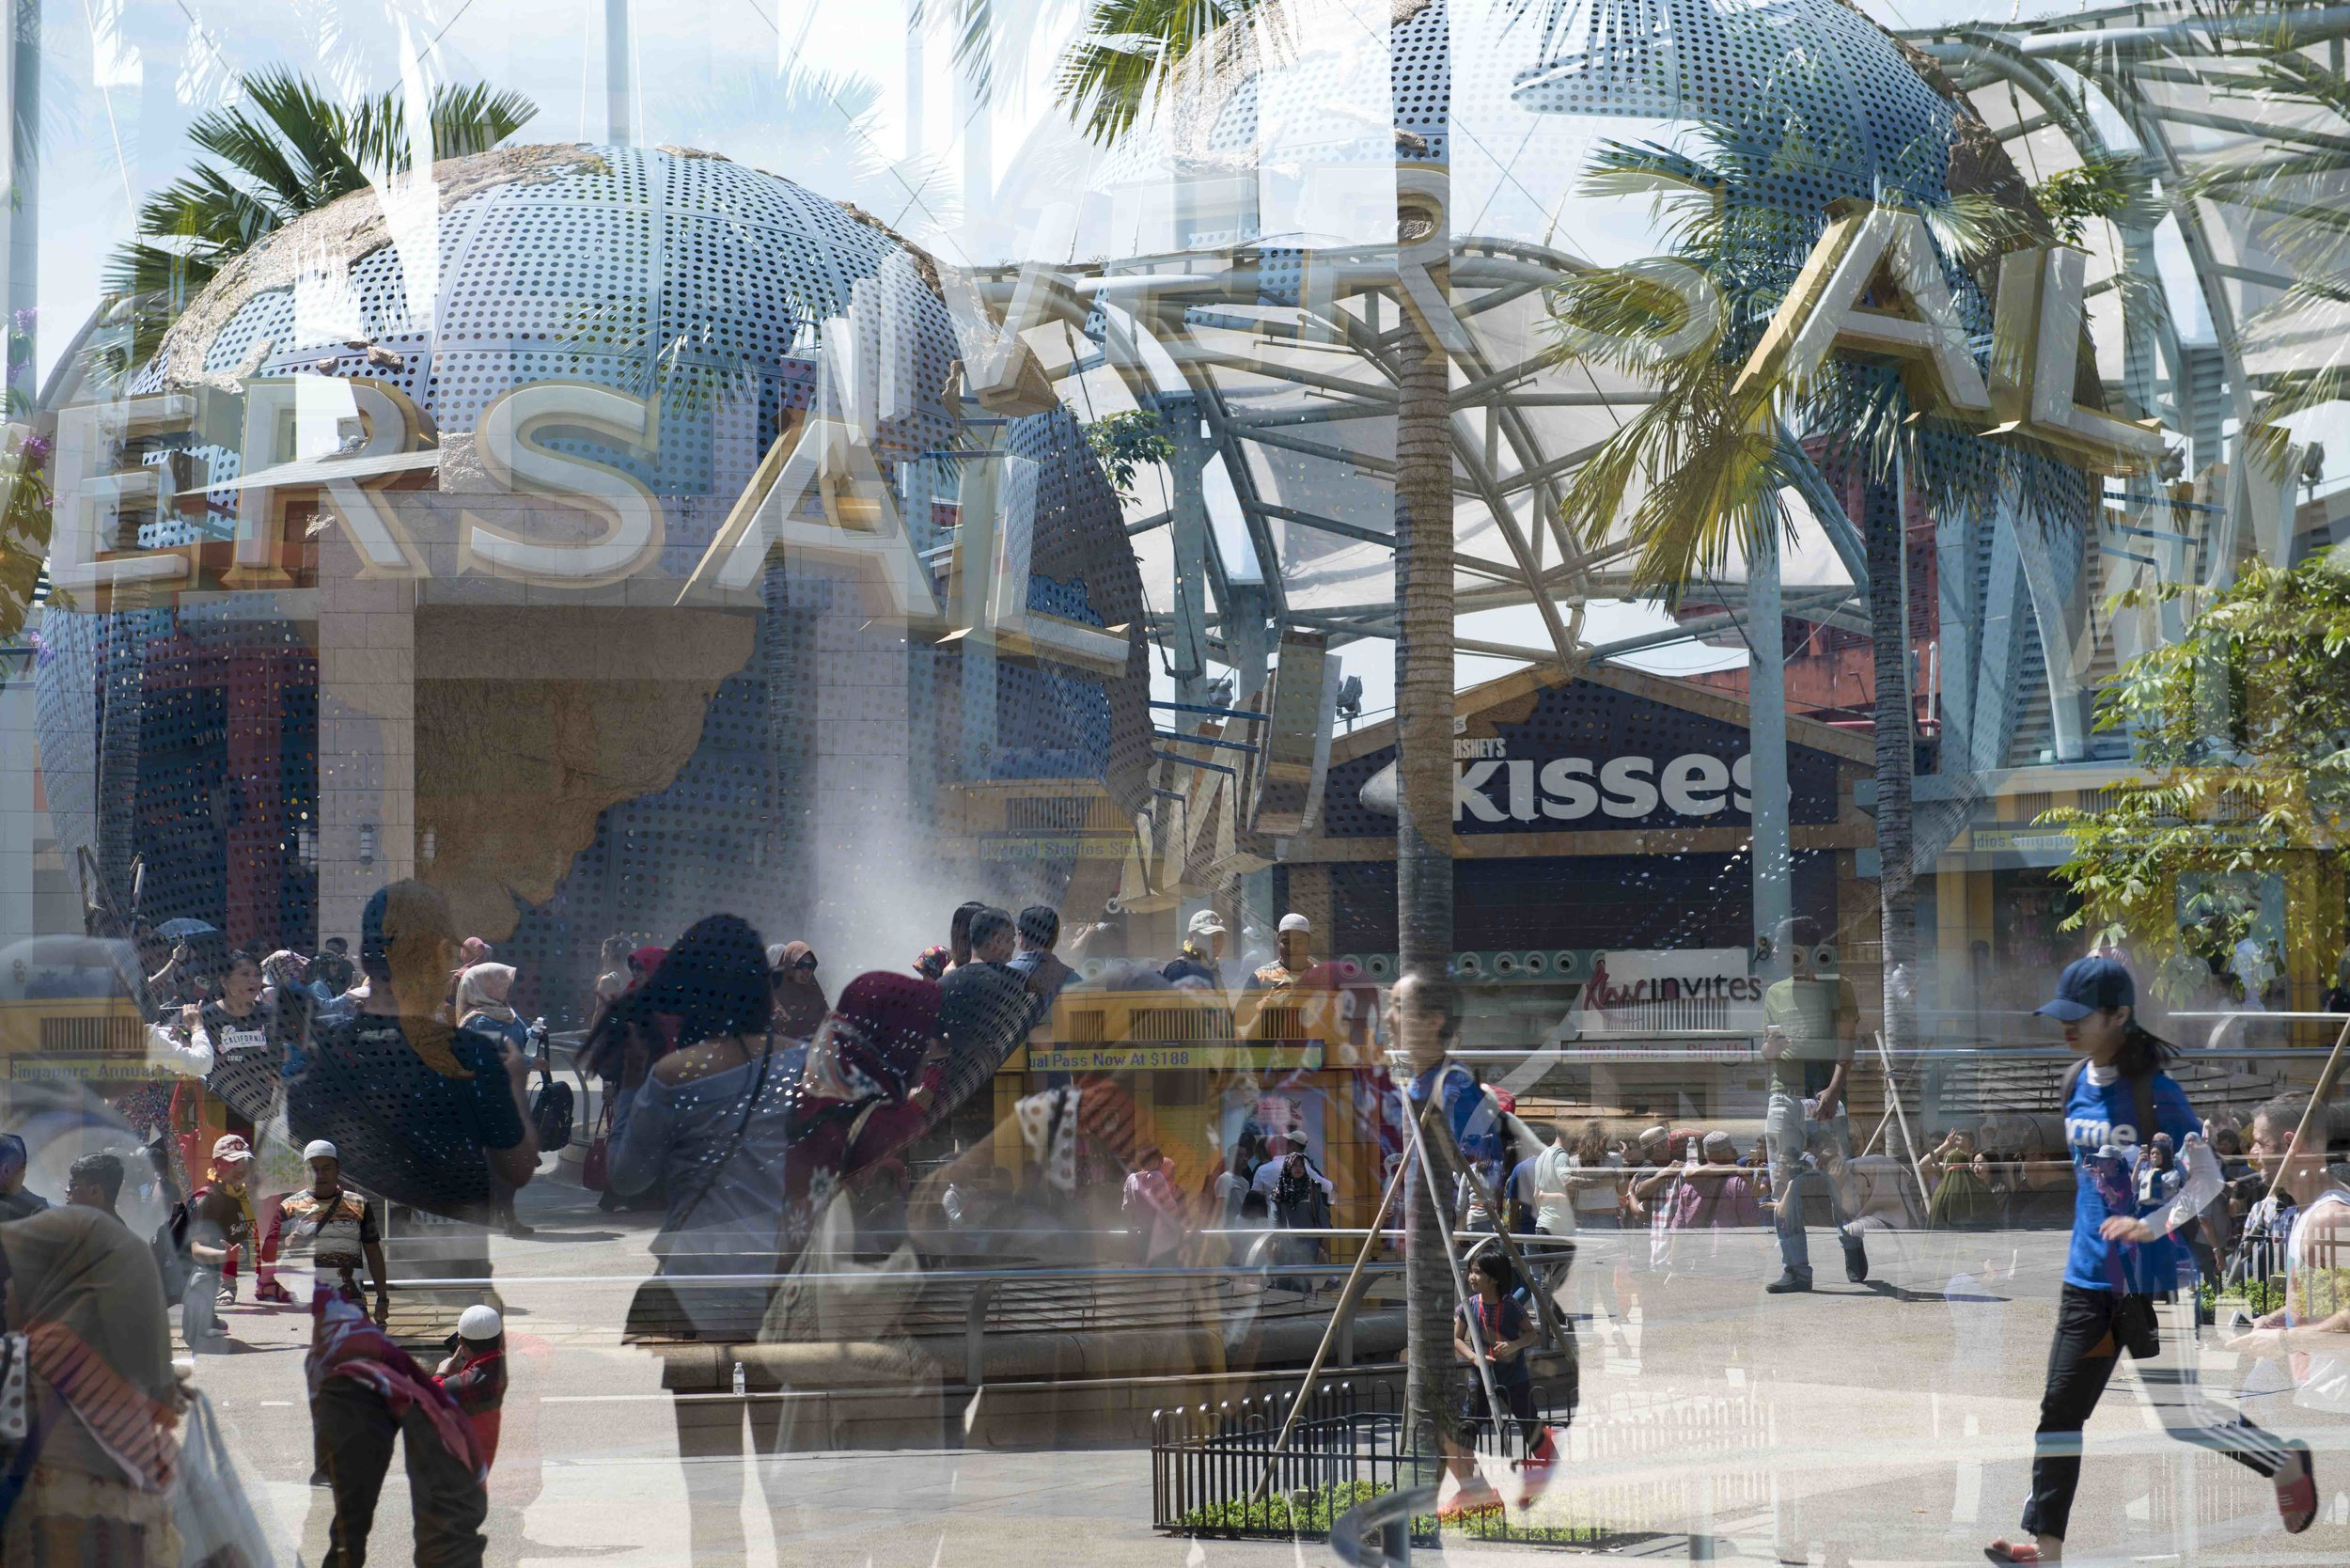 Double Exposure No:7 © Naida Ginnane 2018, Nikon D800, 24-70mm lens. 1/250 at f/6.3  We see two different views of the theme park entrance. Two different moments in time overlapping, gives us an impression of the crowd and busyness of the location.